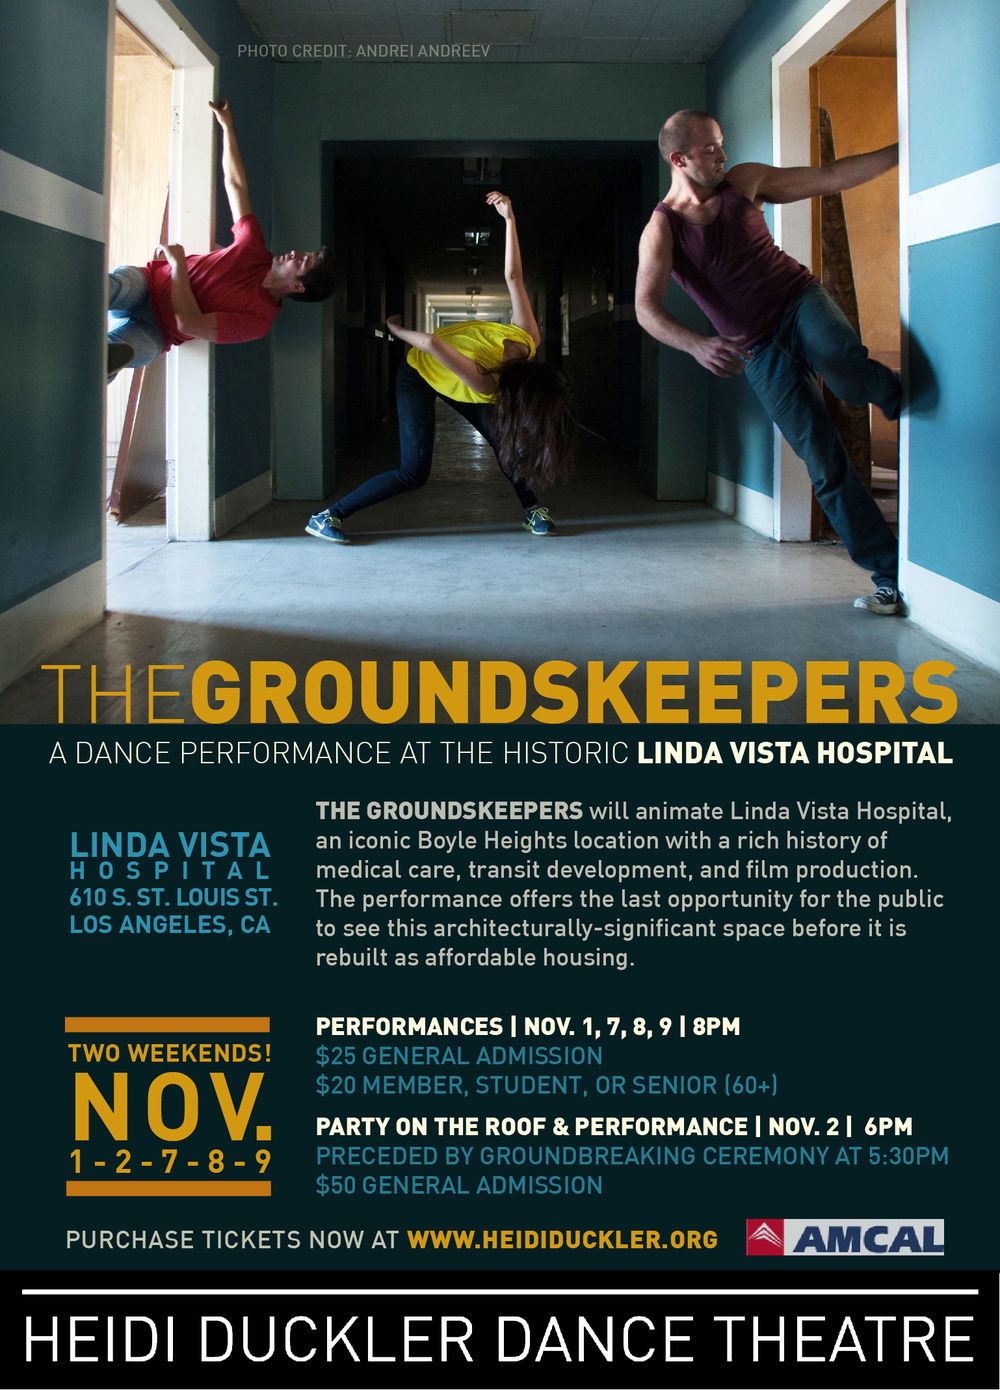 Heidi Duckler Dance Theatre - The Groundskeepers Email Flyer-01.jpg